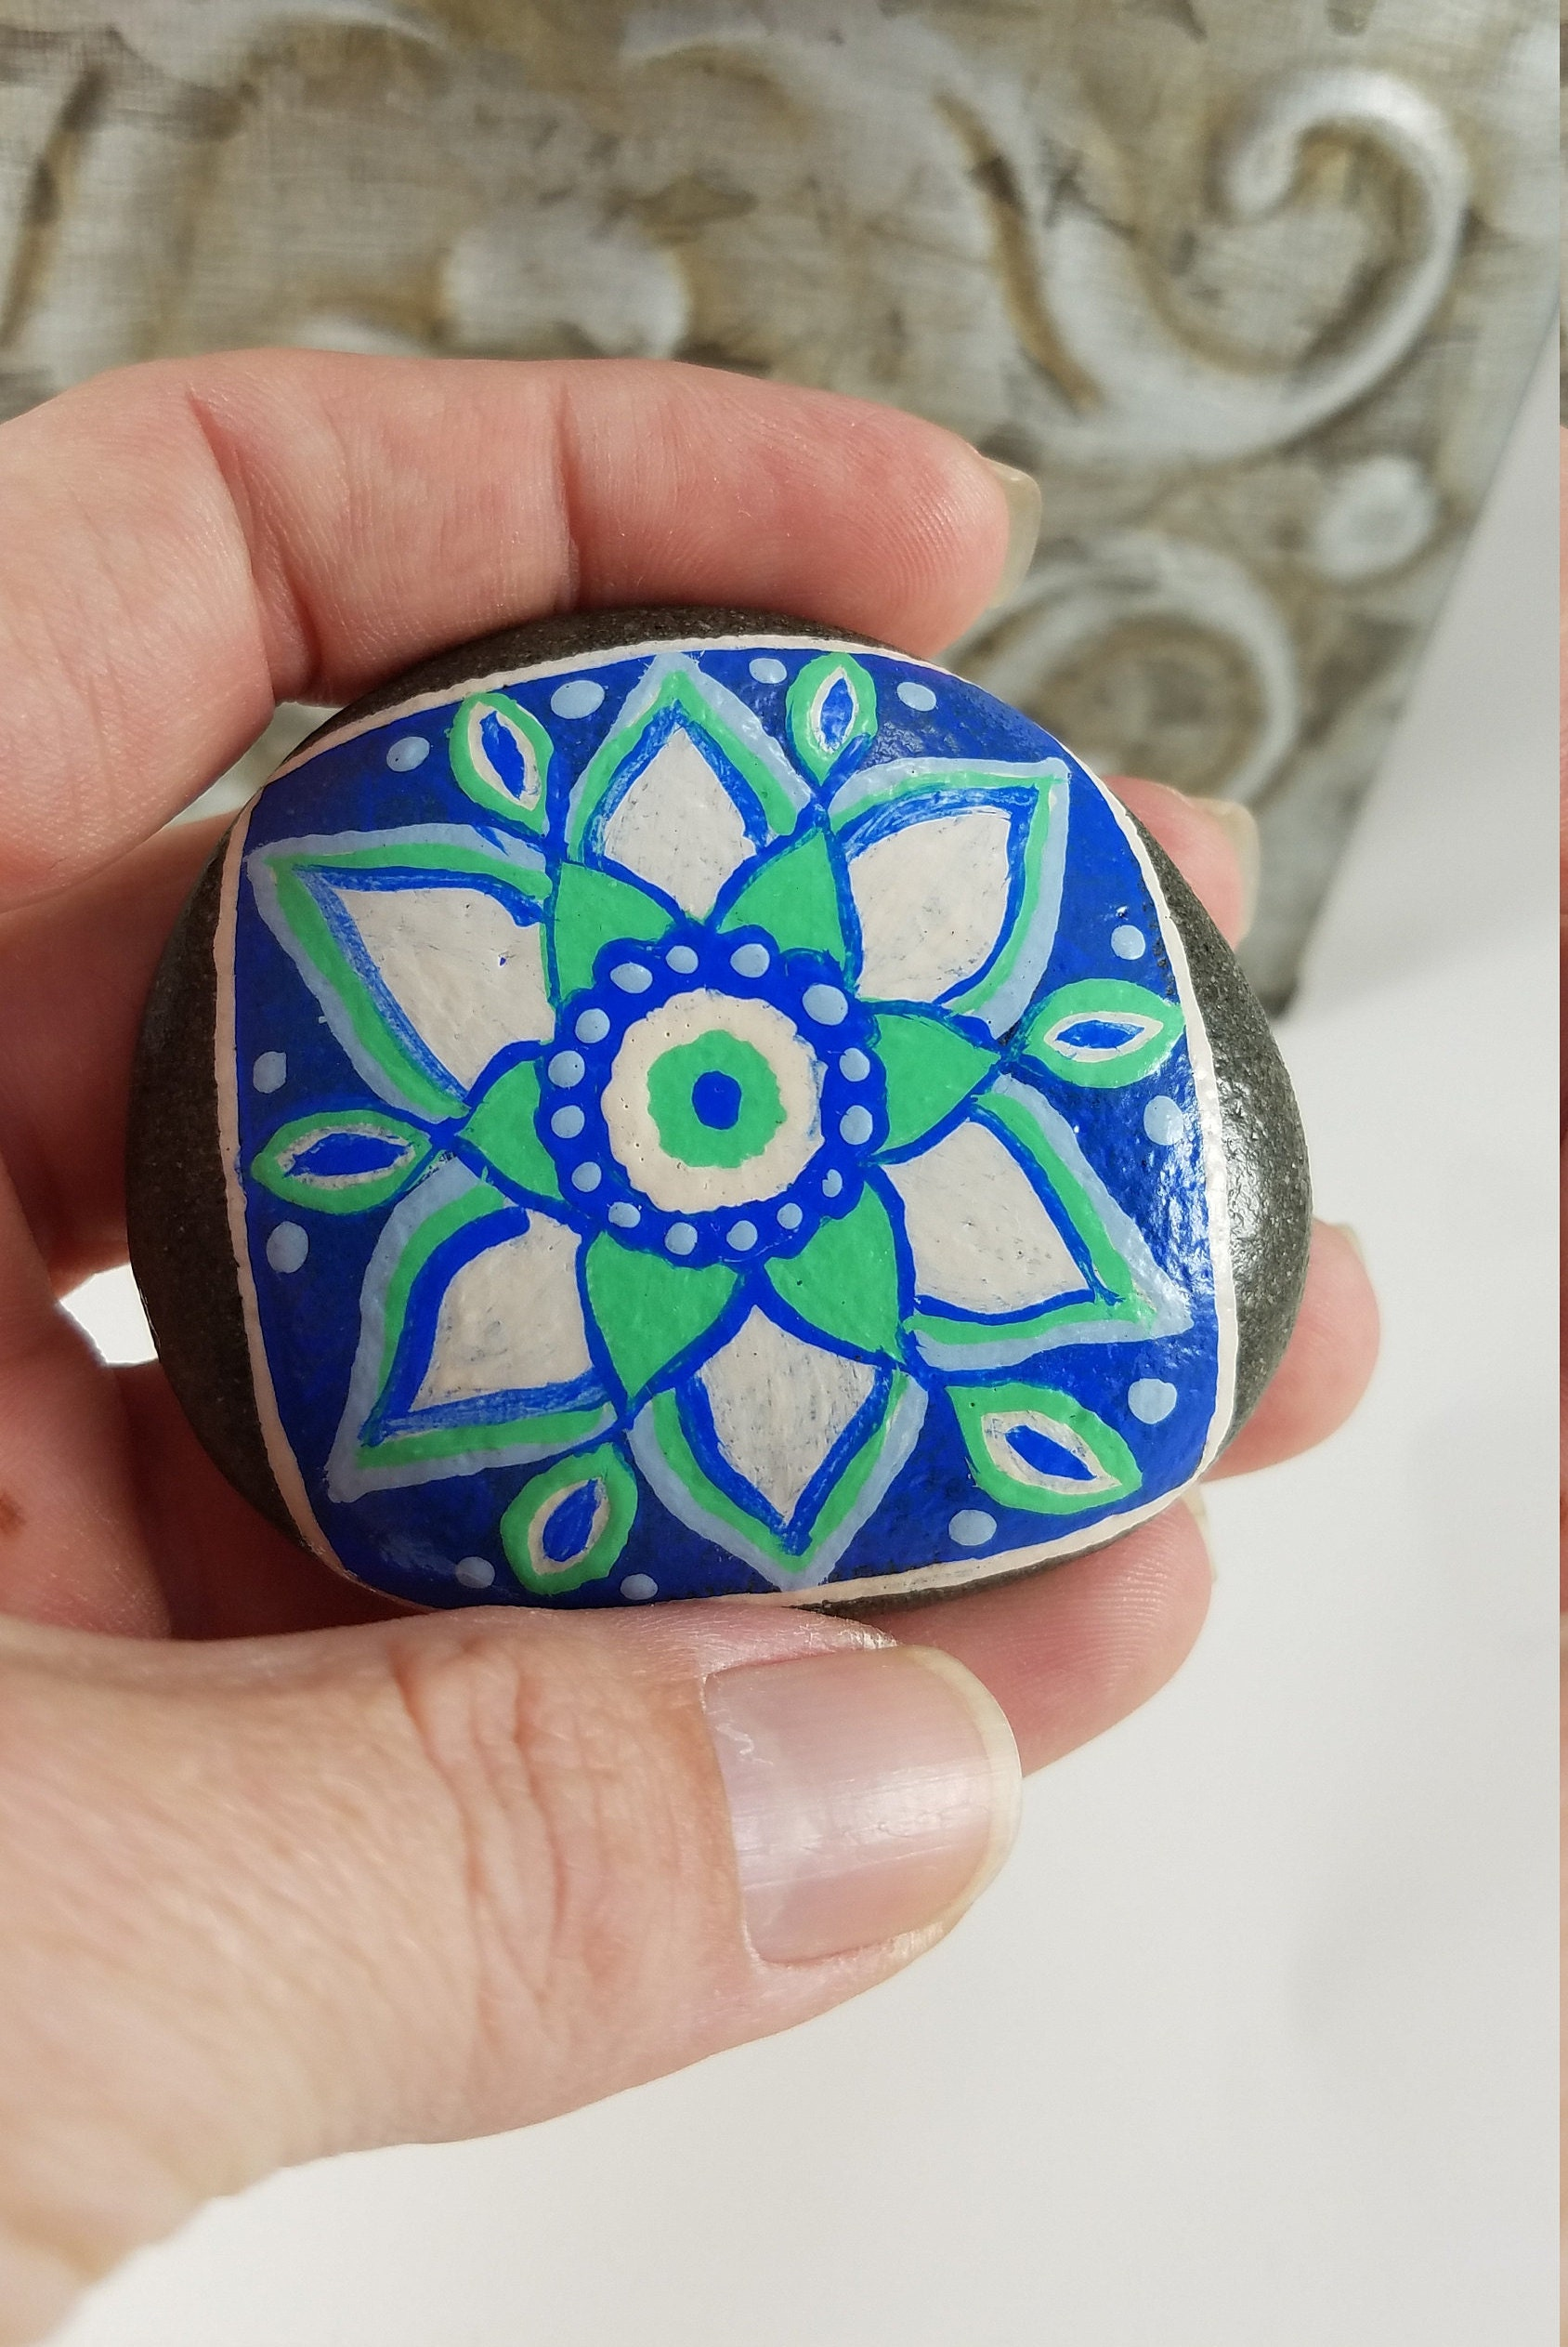 INSPIRATIONAL Sentiment MESSAGE Paperweight Hand carved Stone Paperweight